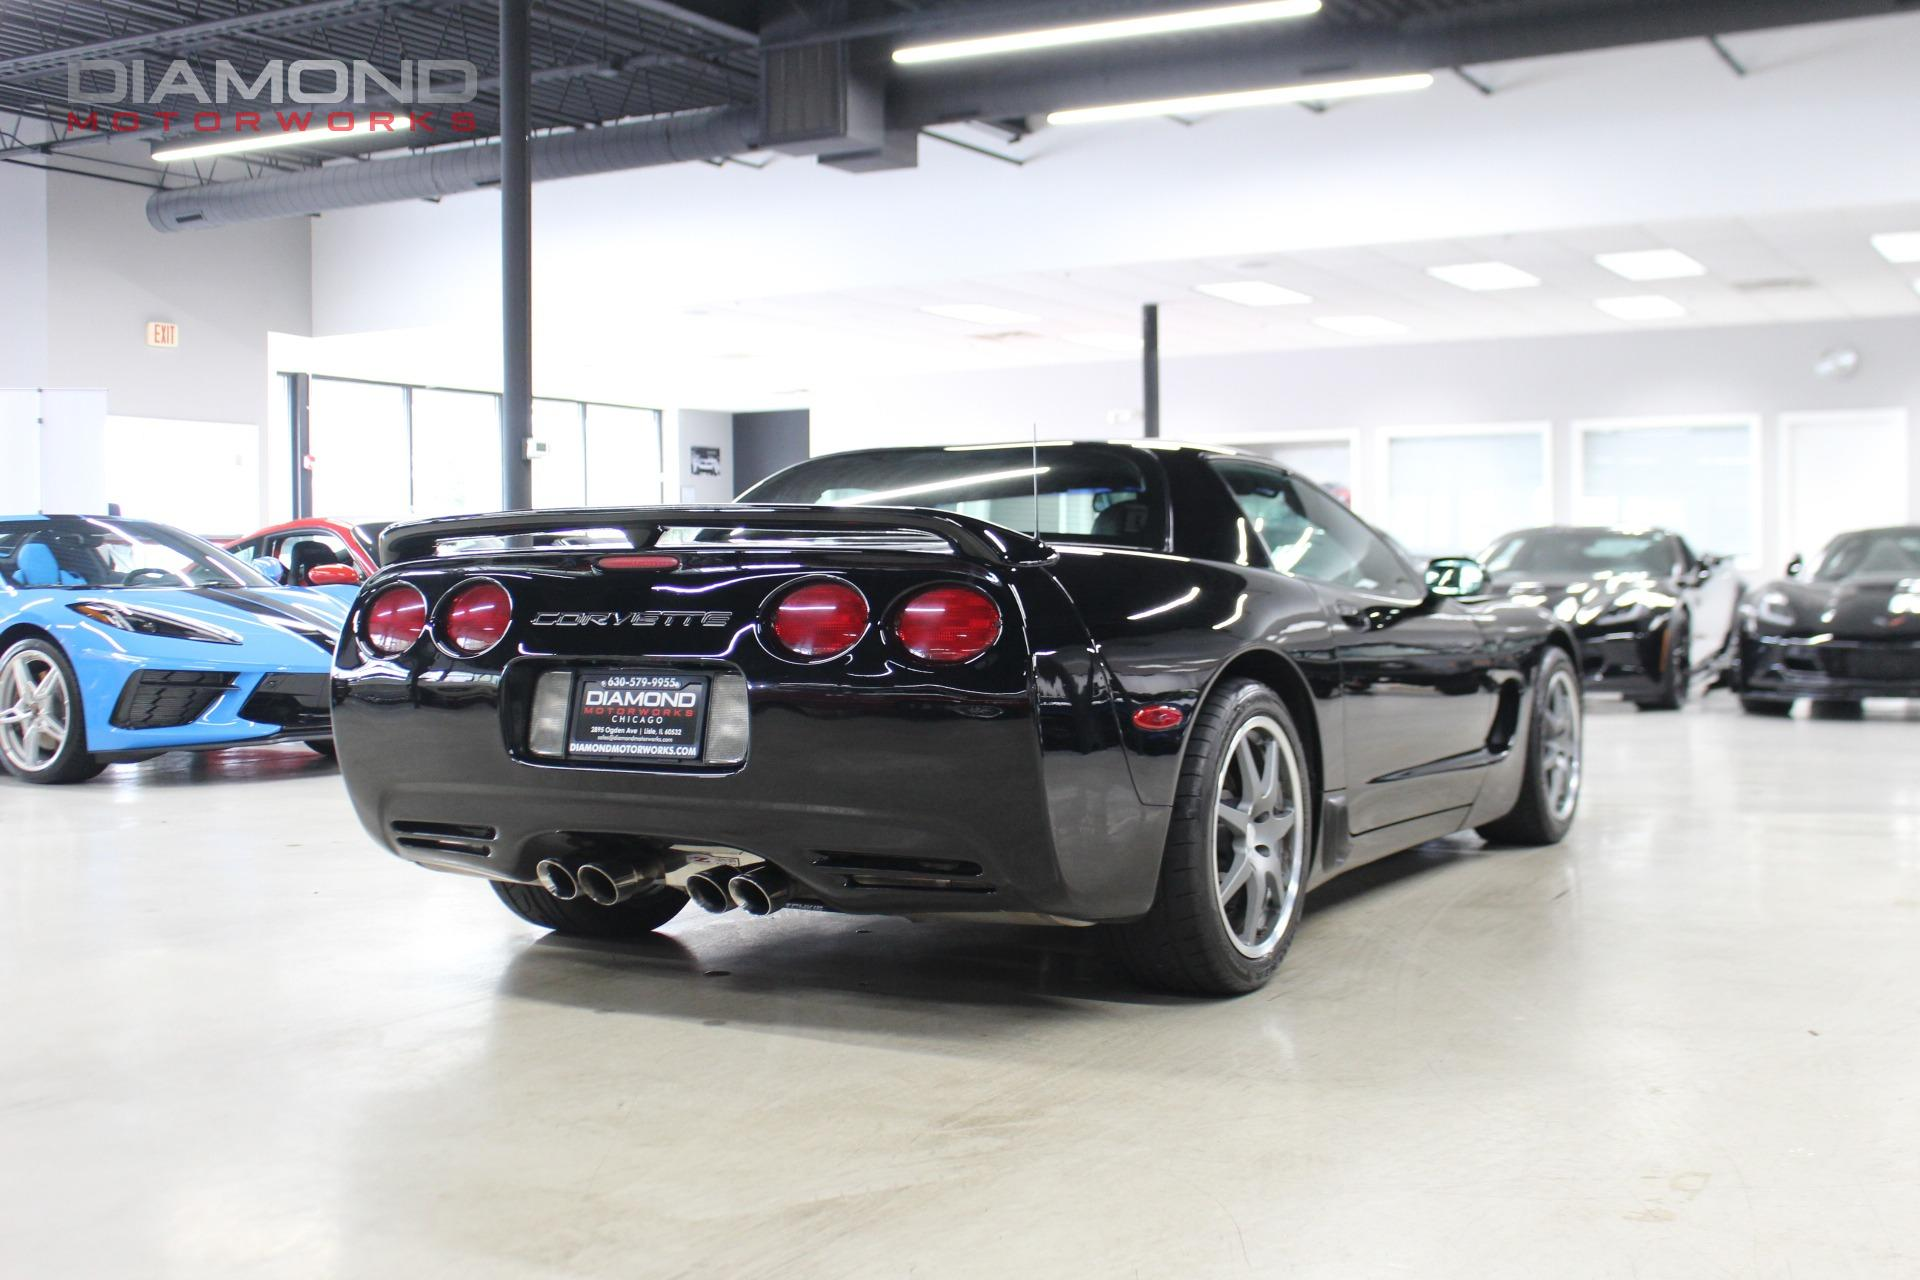 Used-2002-Chevrolet-Corvette-Z06-Supercharged